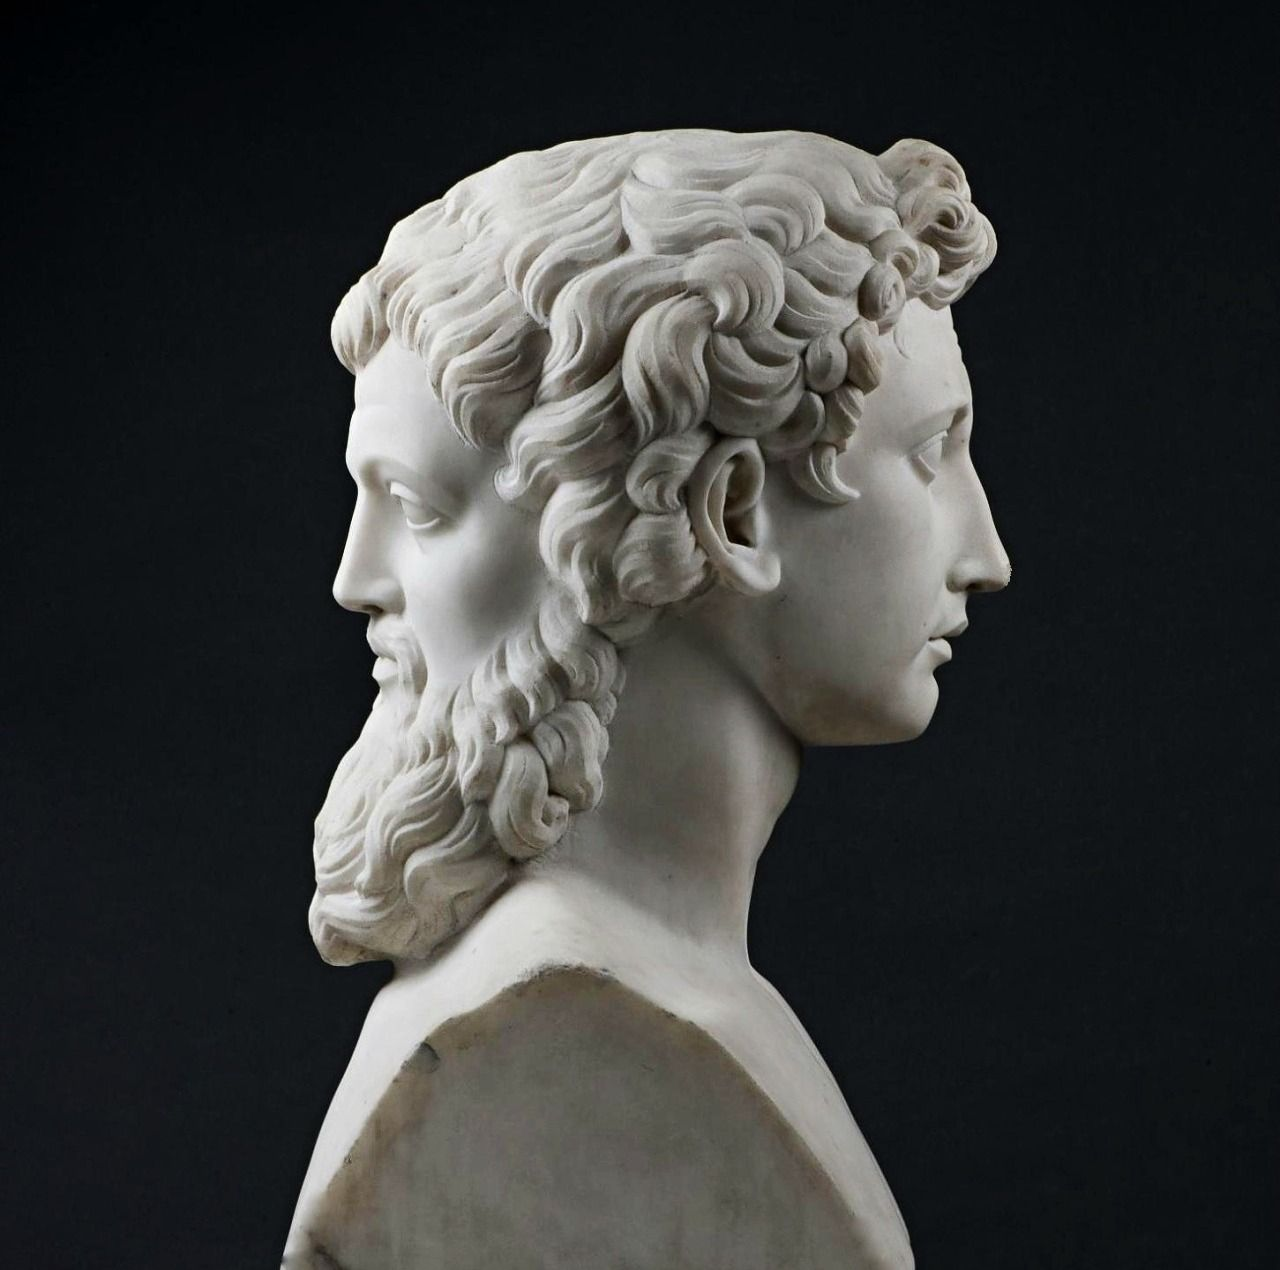 Two-faced Janus - who is this